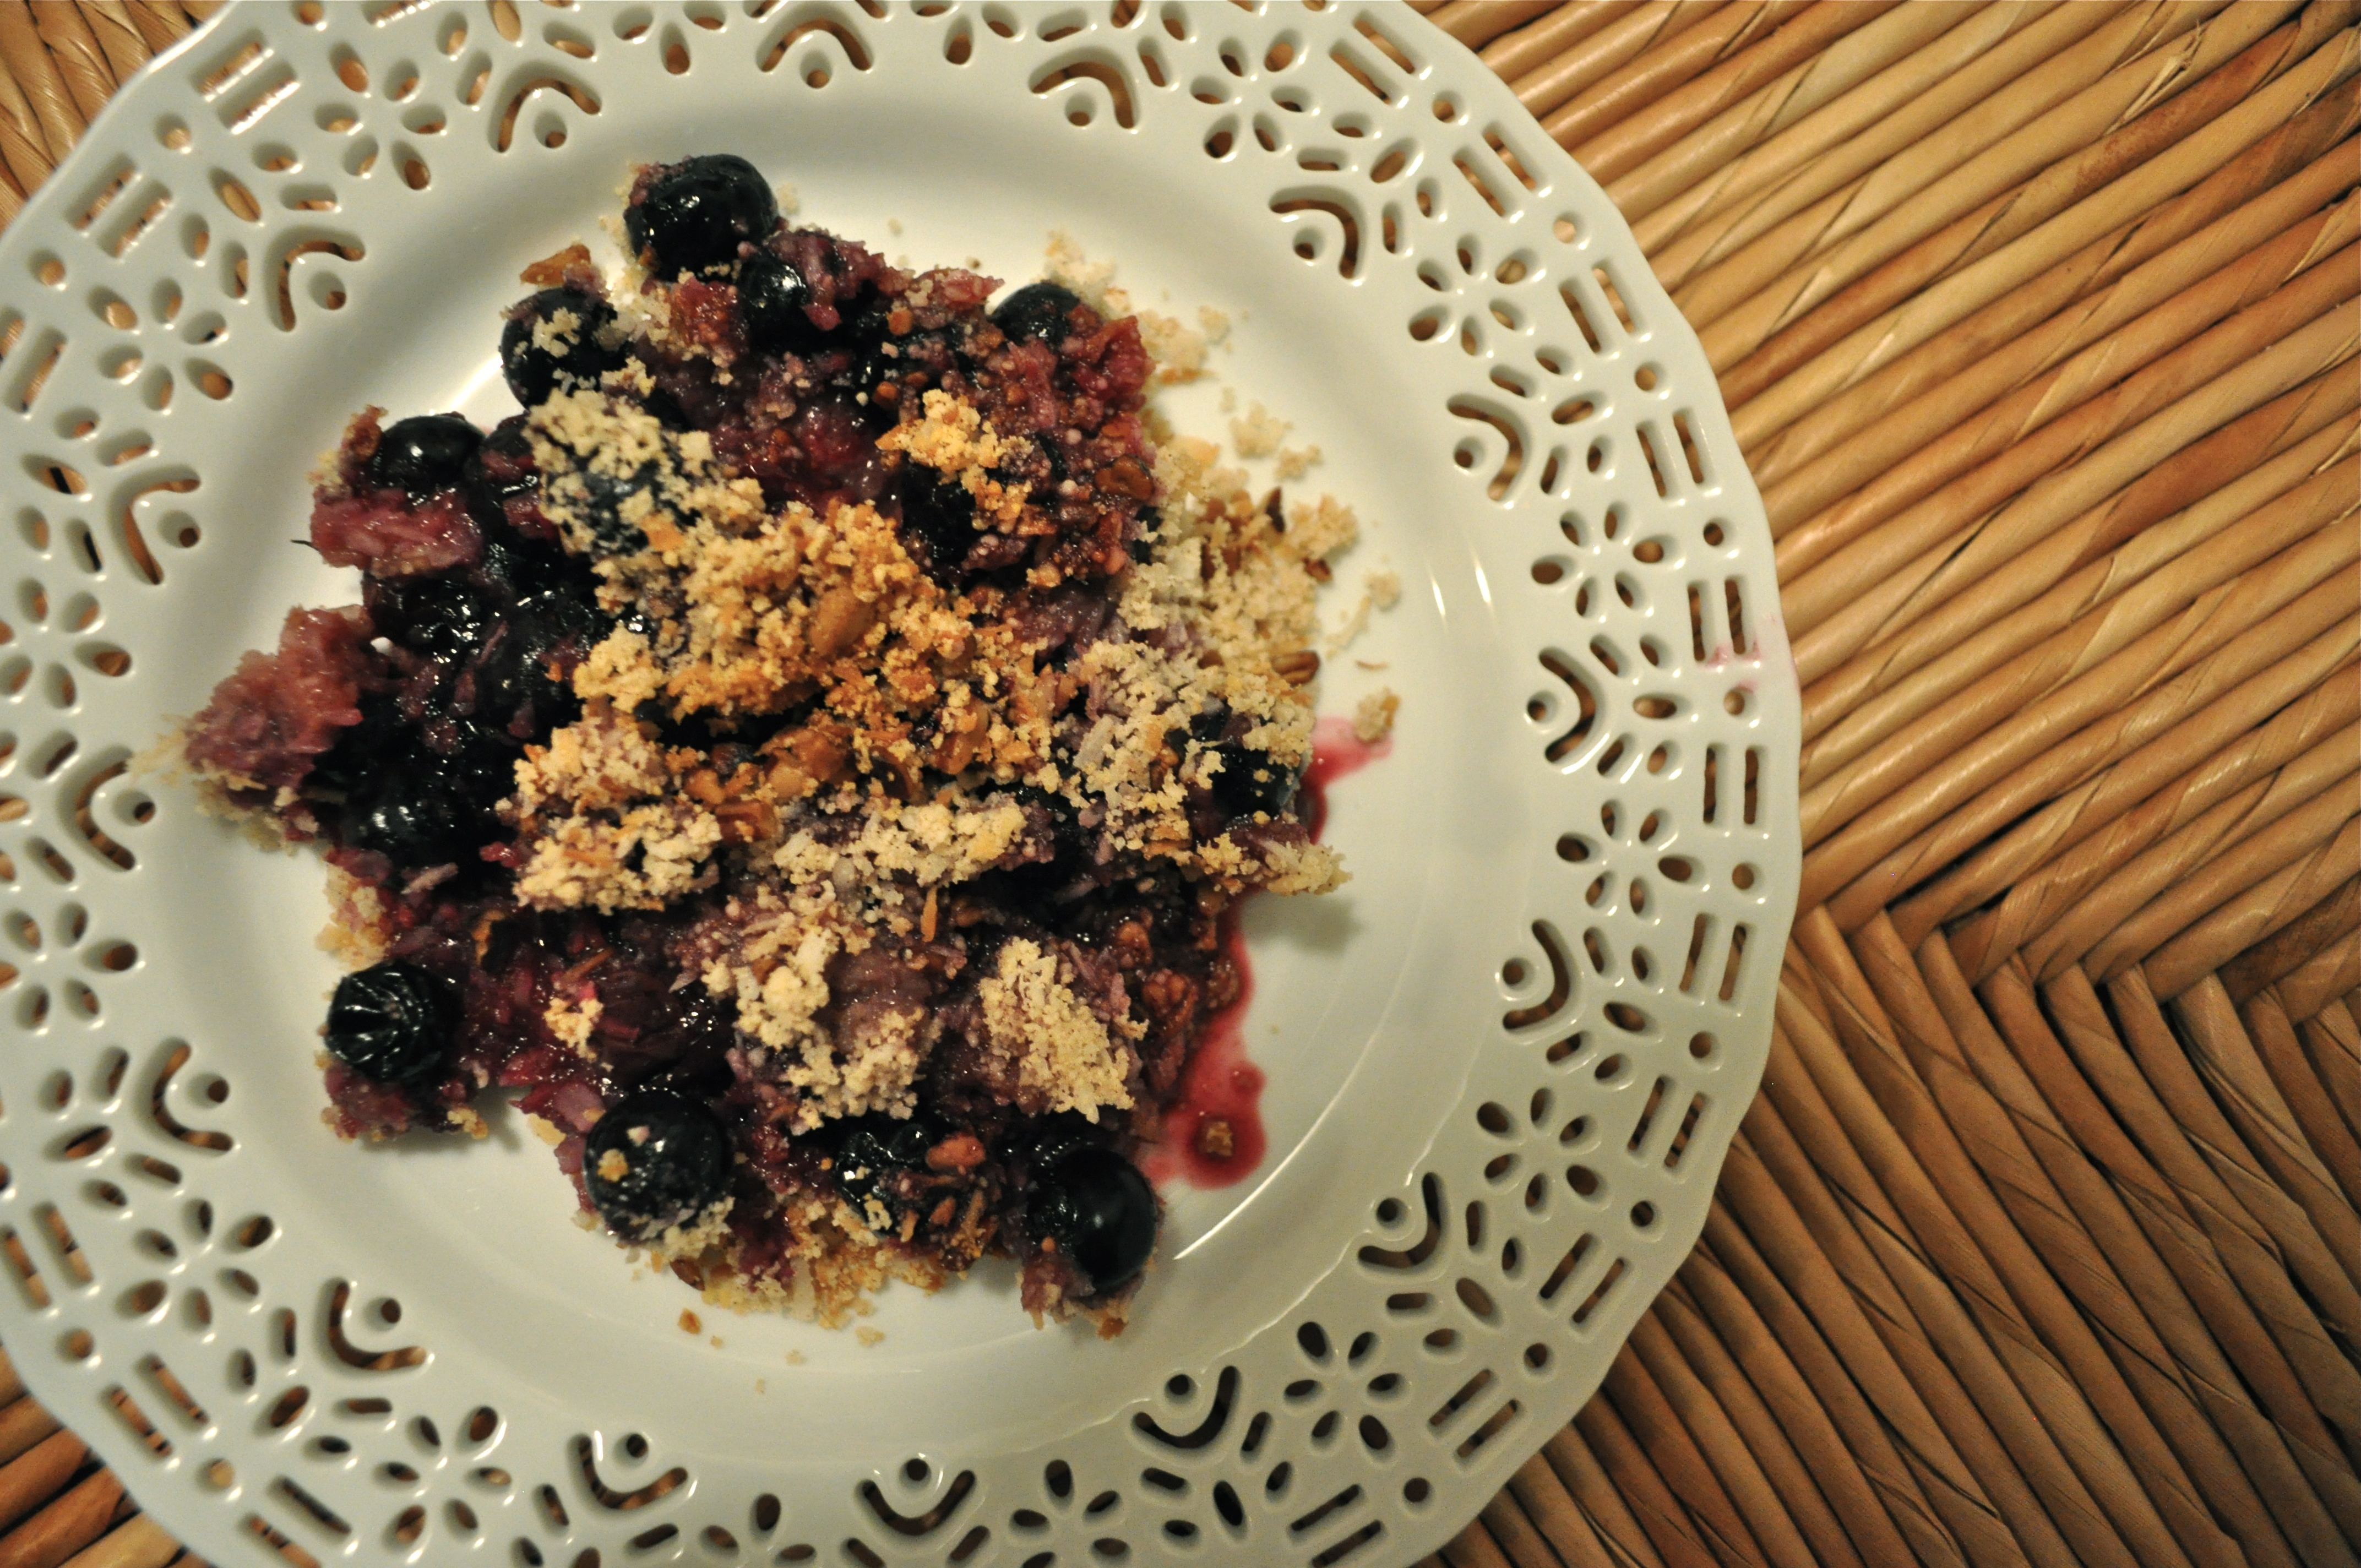 Blueberry coconut crumble